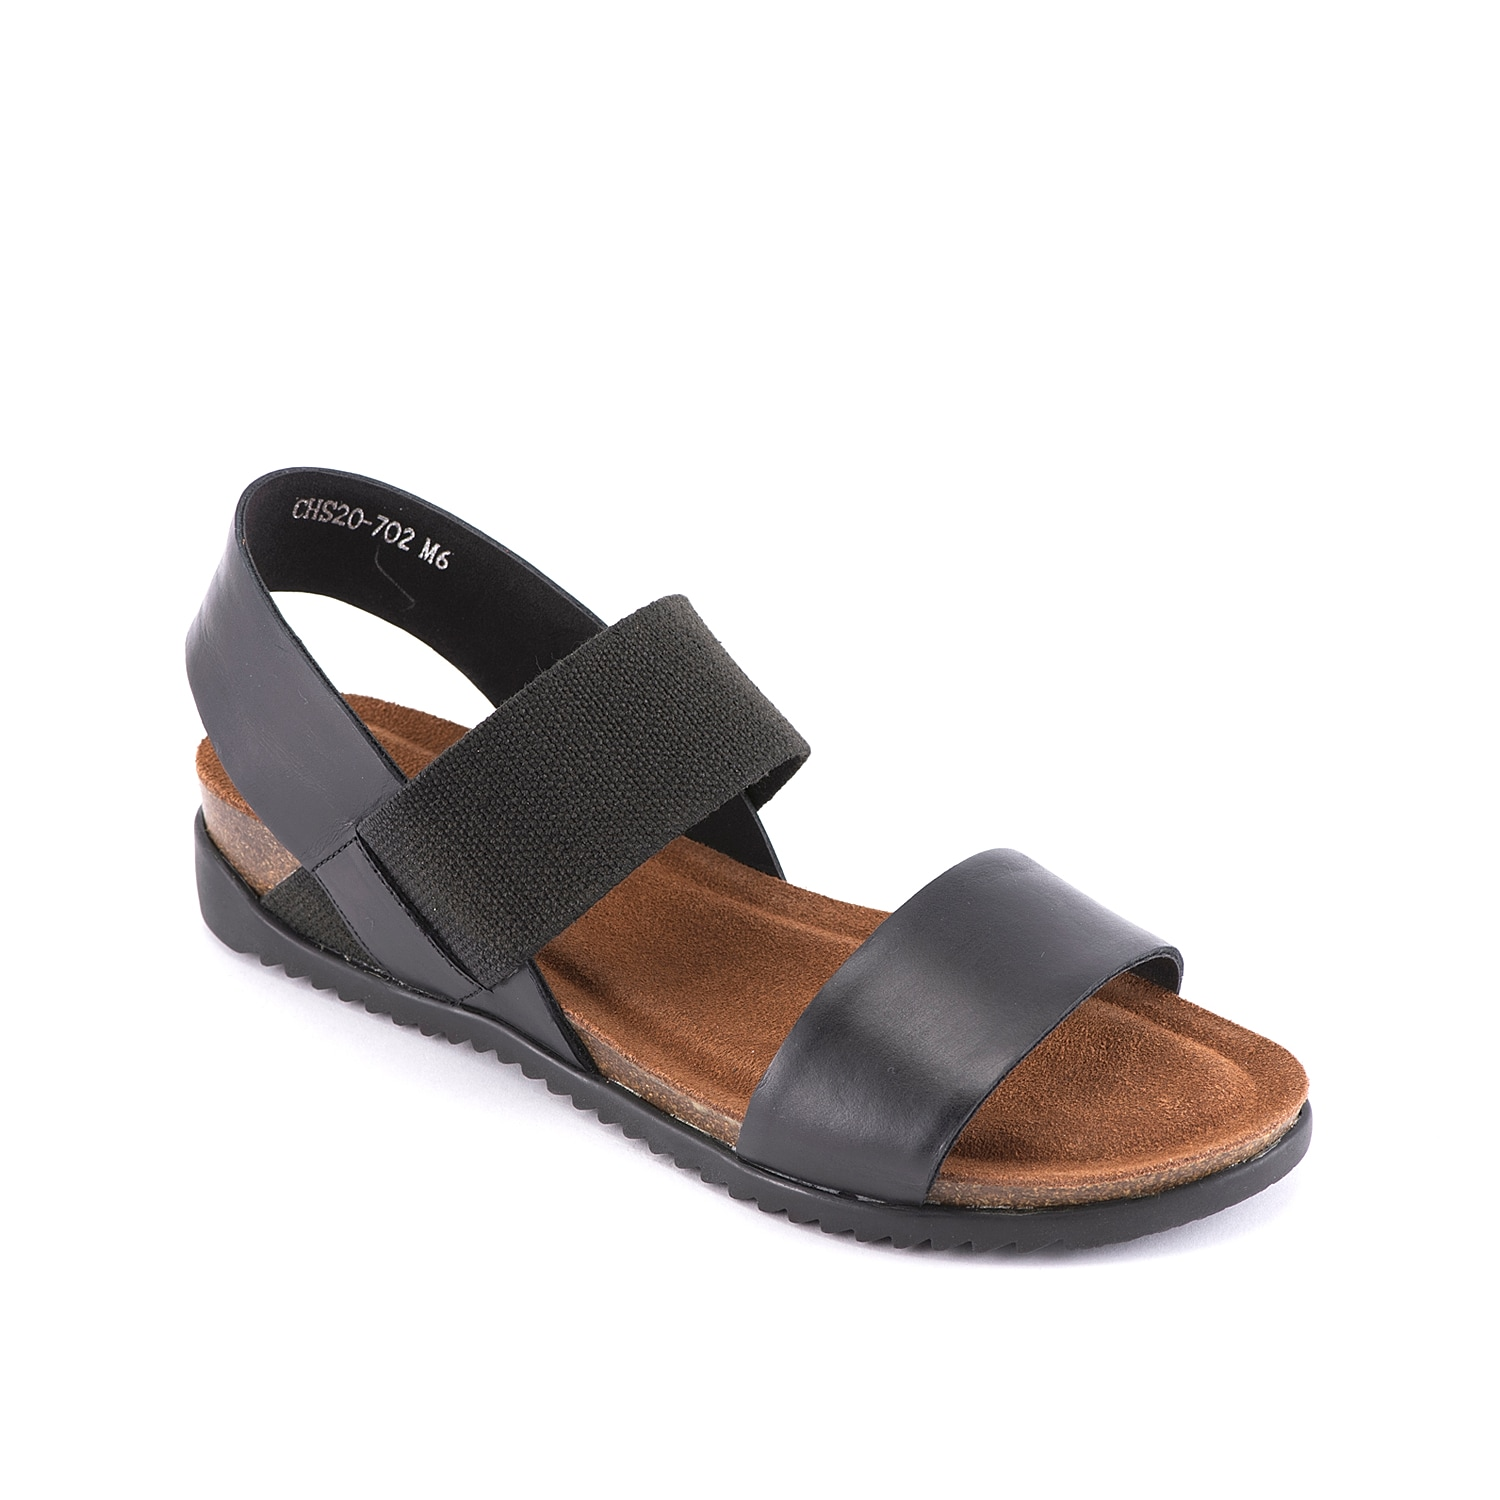 Treat your feet to comfortable style with the Champ sandal from David Tate. This casual pair is fashioned with an elastic band and cork midsole for extra comfortable steps!